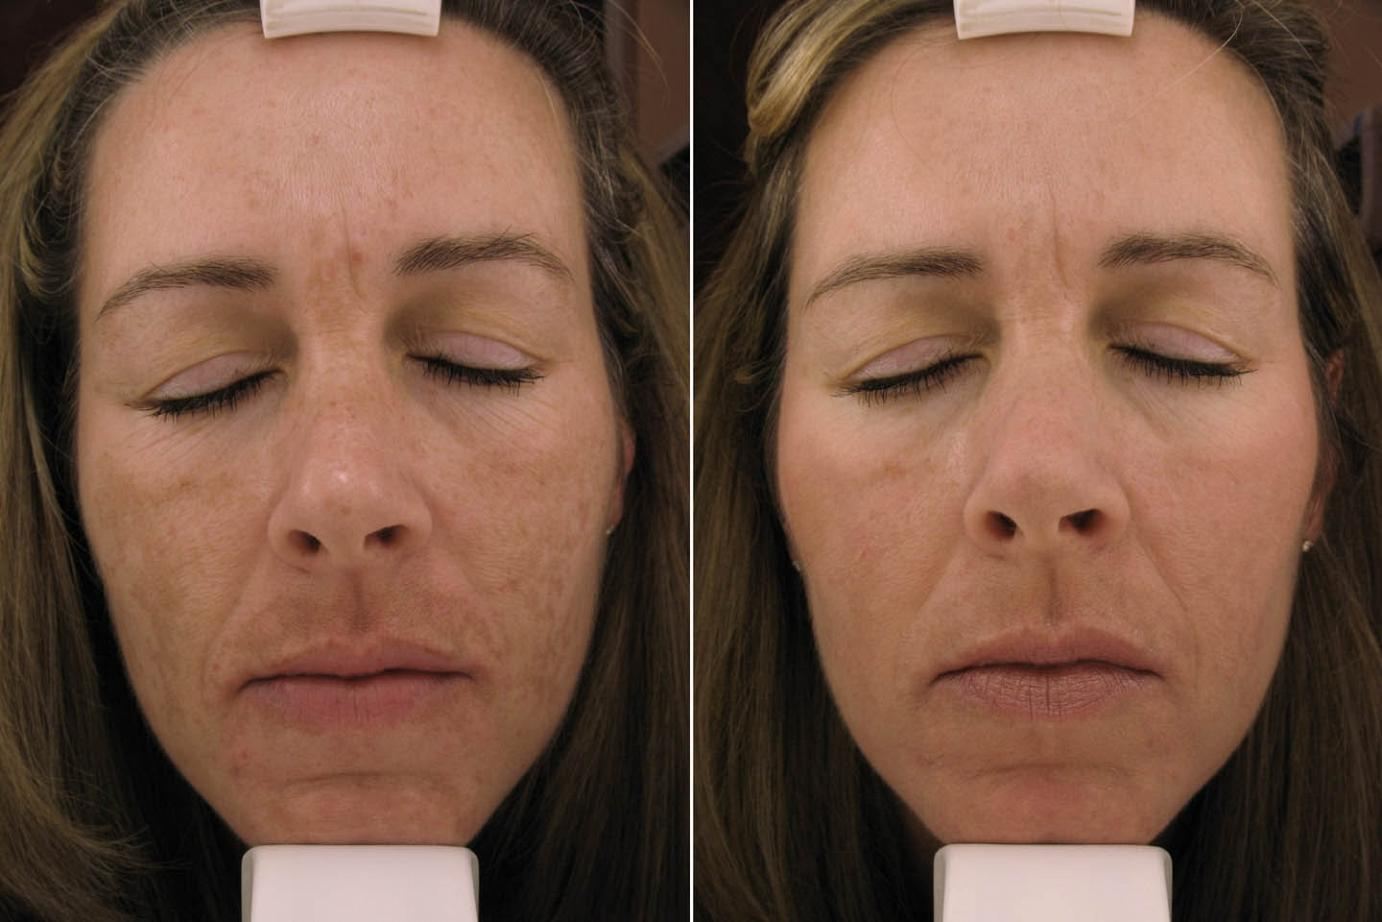 Melanage Peel In Philadelphia And Mainline Pa Ringpfeil